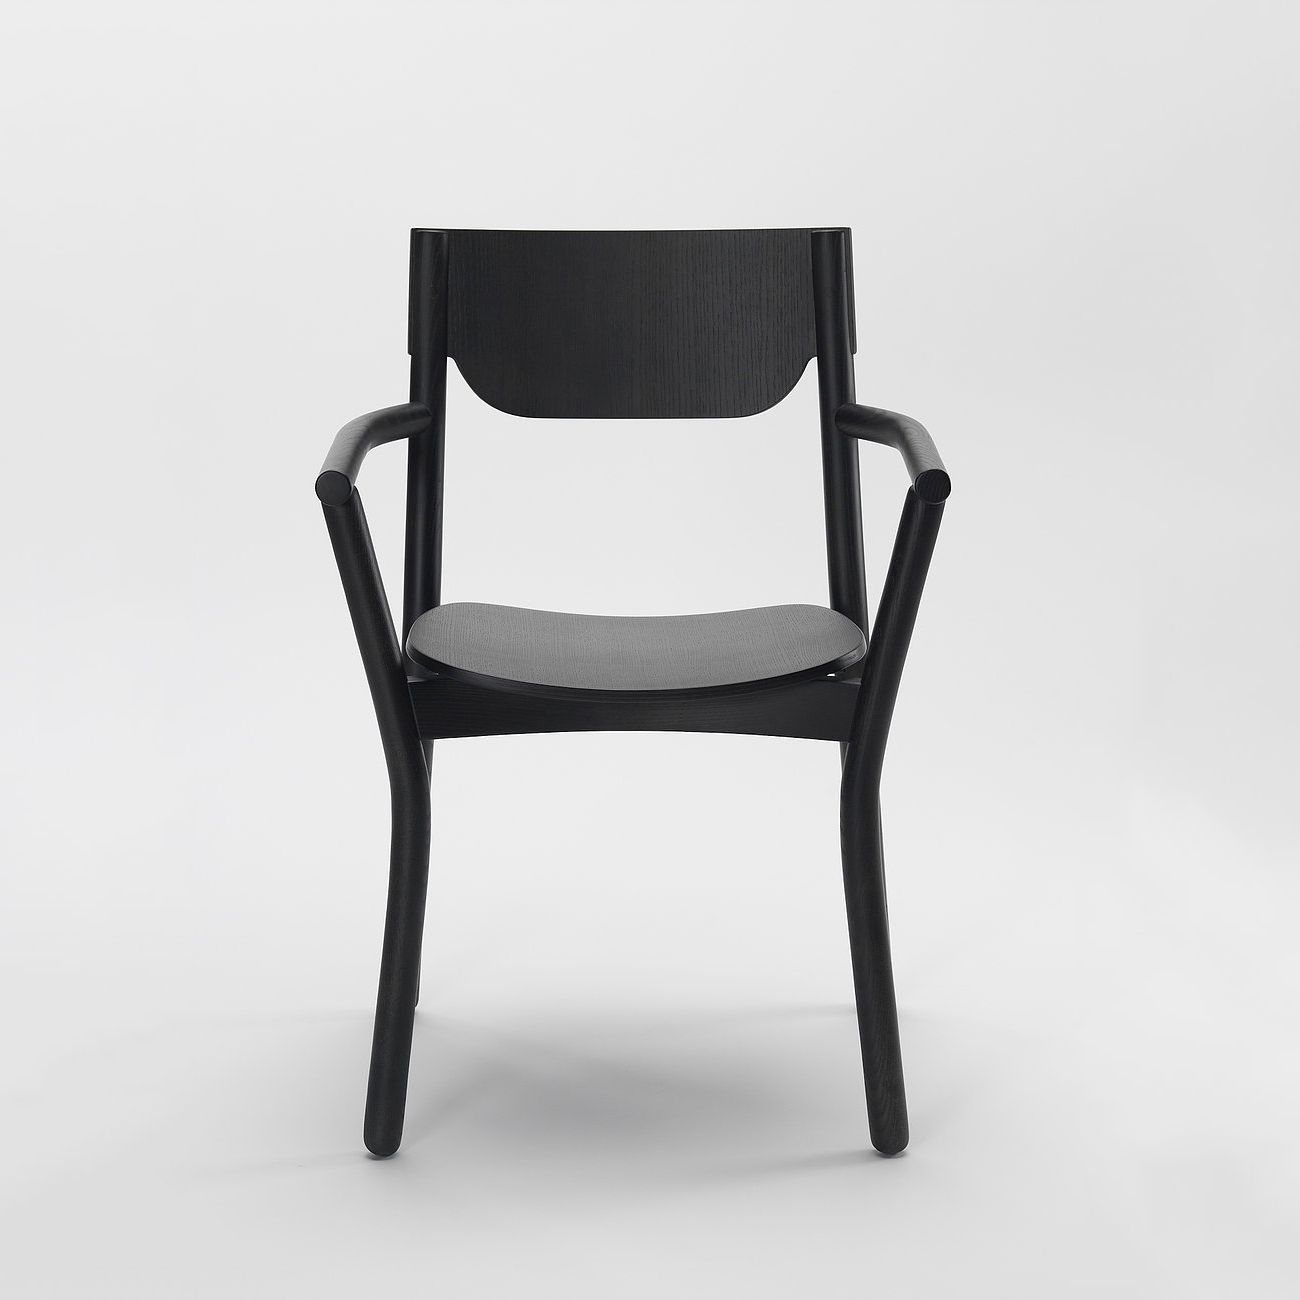 Designer Chairs Used Nico Leibal Featuring Minimal And Functional Designs